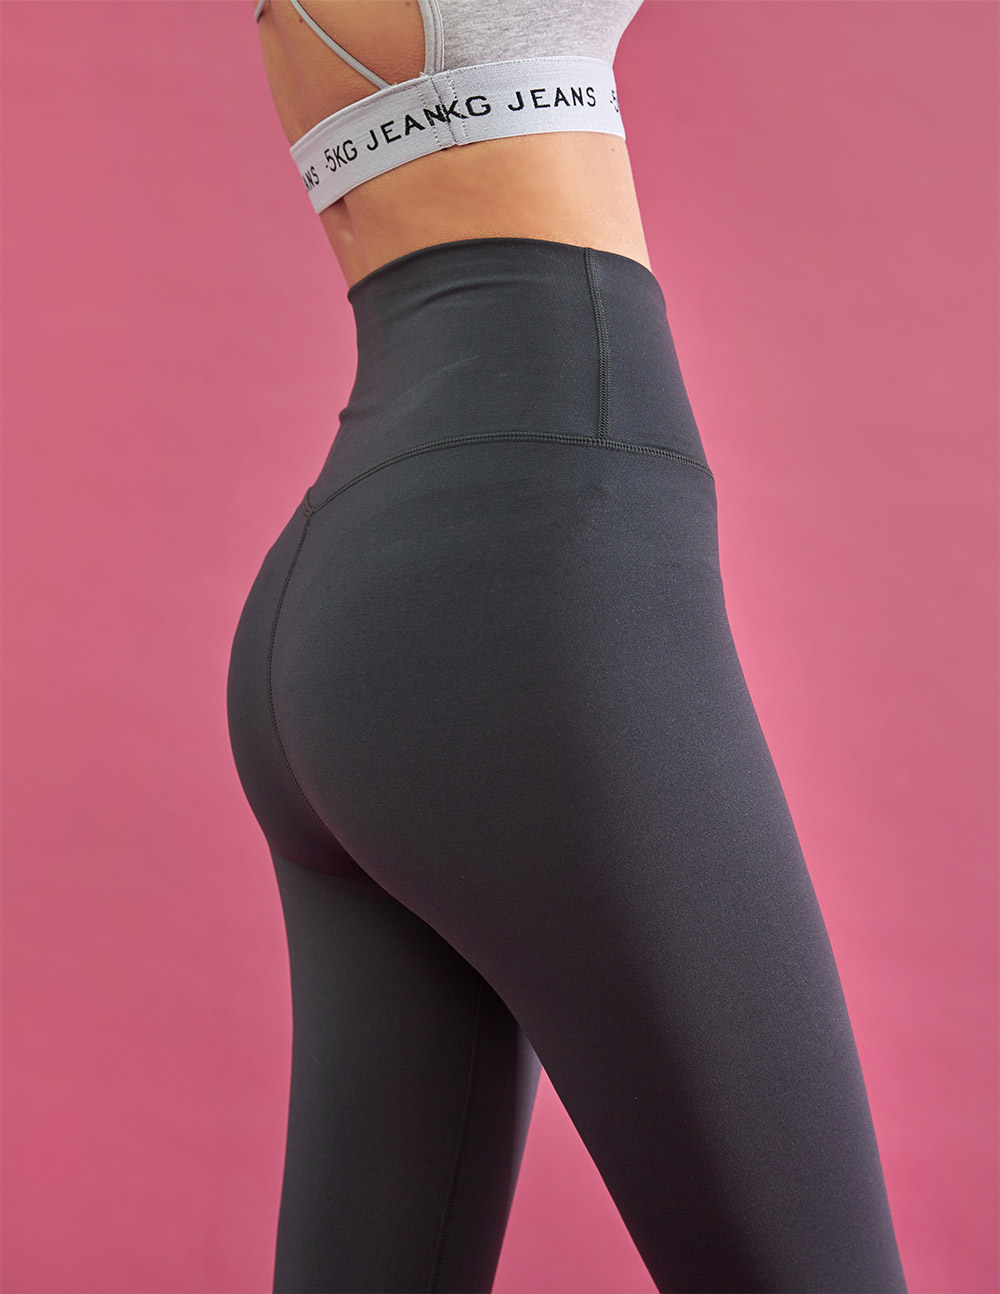 //cdn.nhanh.vn/cdn/store/29770/psCT/20190108/11027736/_5Kg_Perfect_Line_Leggings_Plus_(2019_22_33).jpg